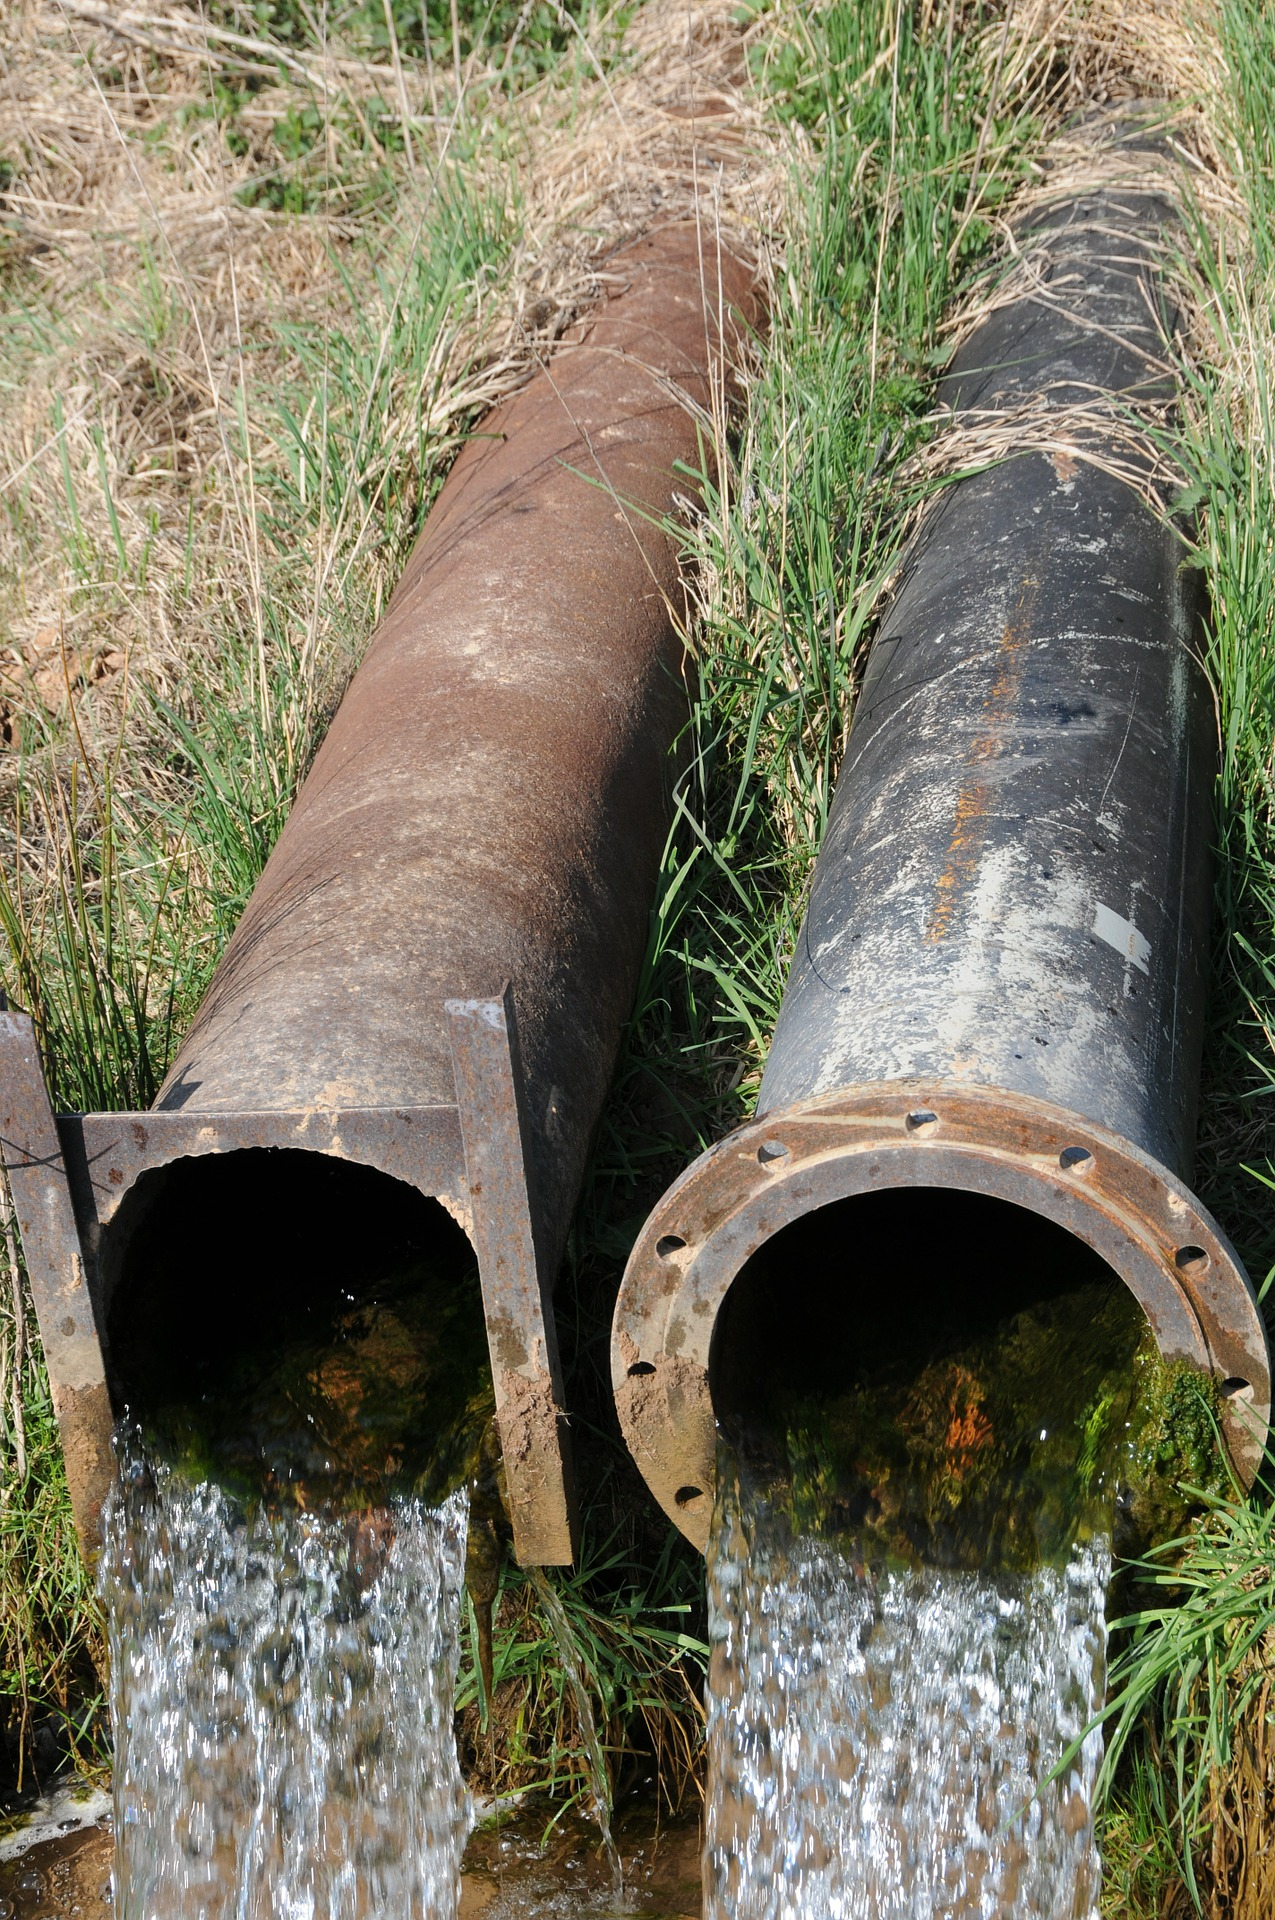 Large flowing drainage pipes